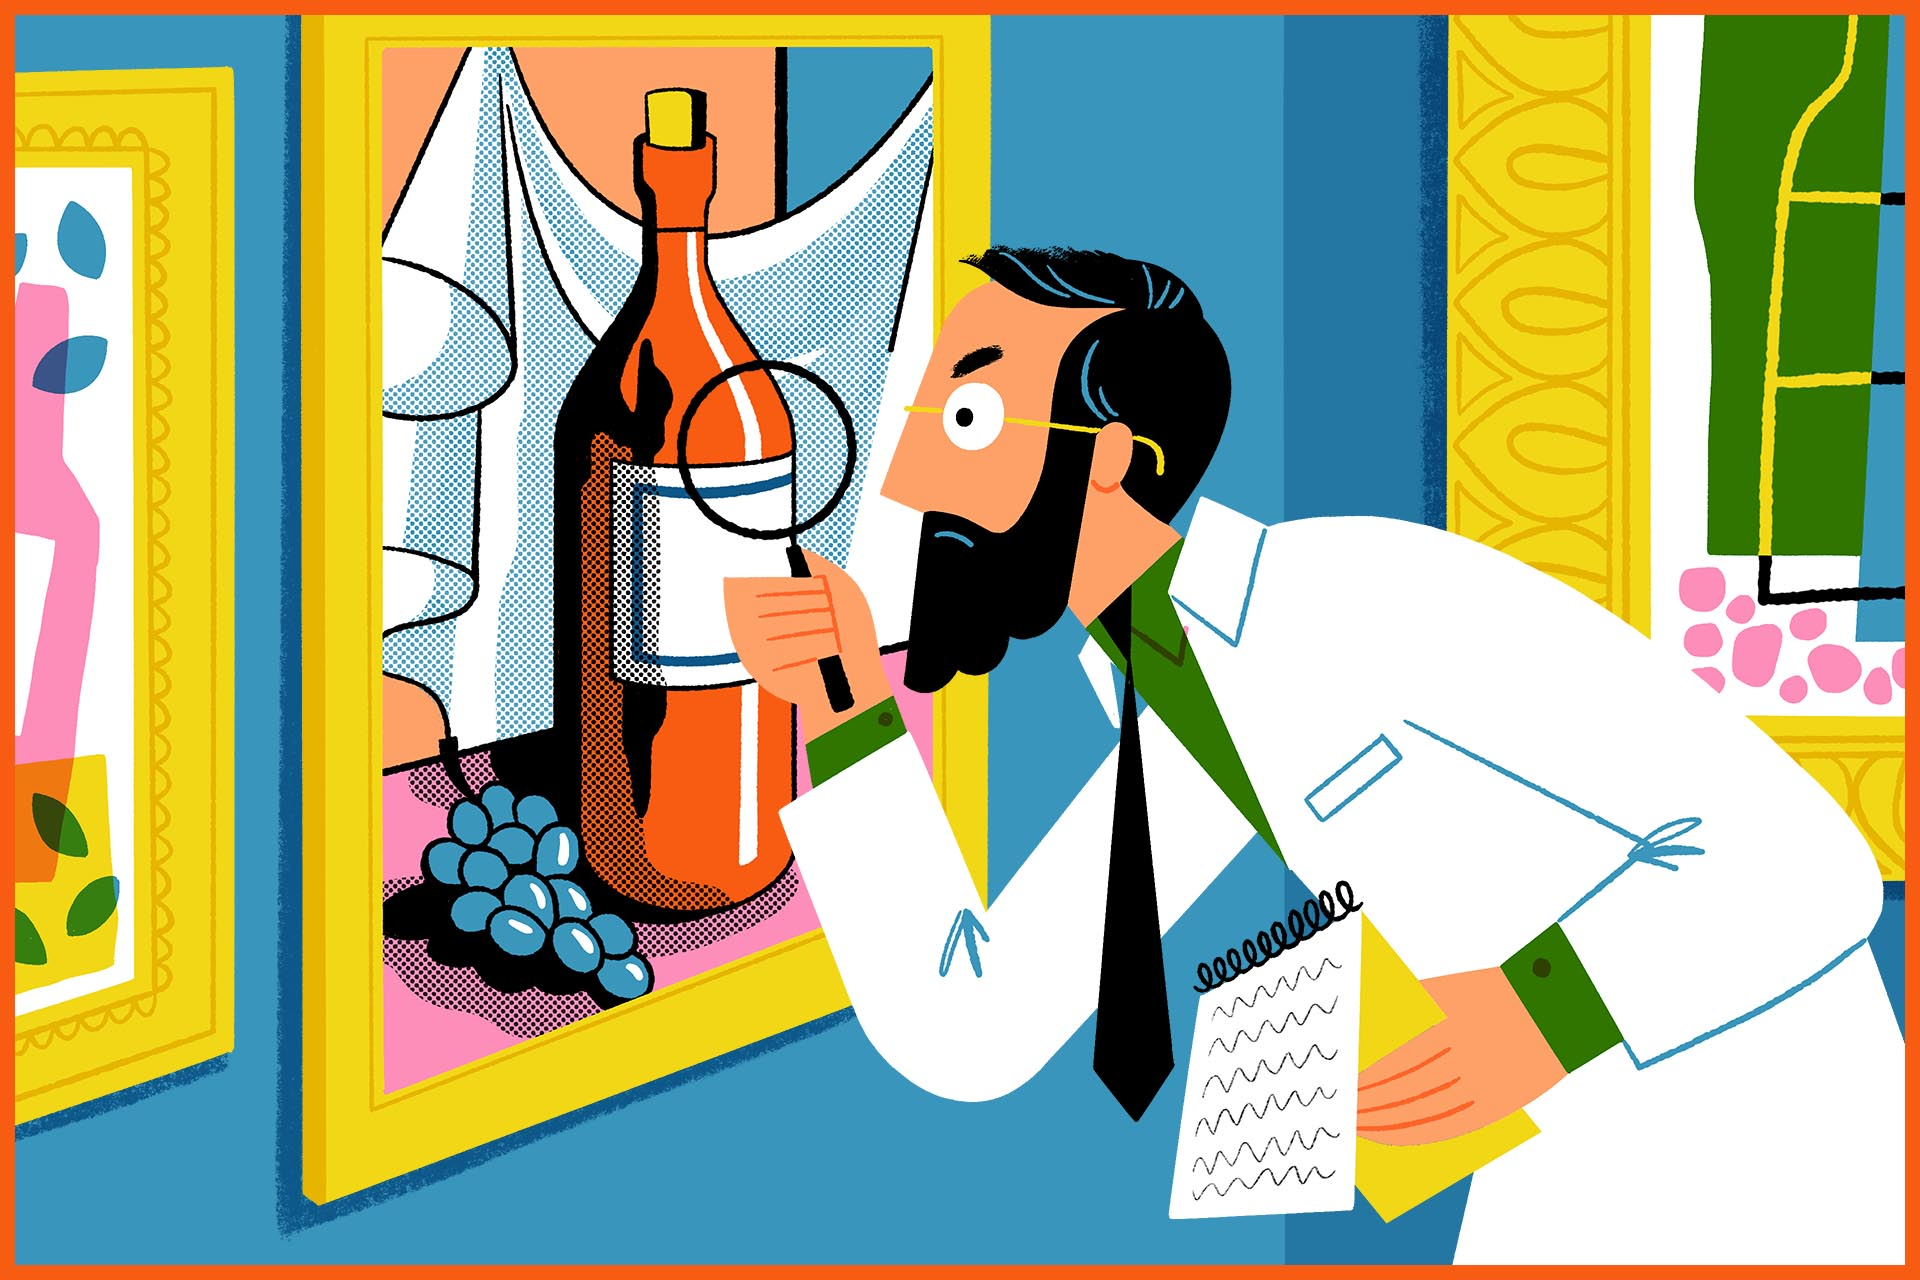 Illustration of a man with a magnifying glass looking at a piece of hanging artwork that depicts a wine bottle